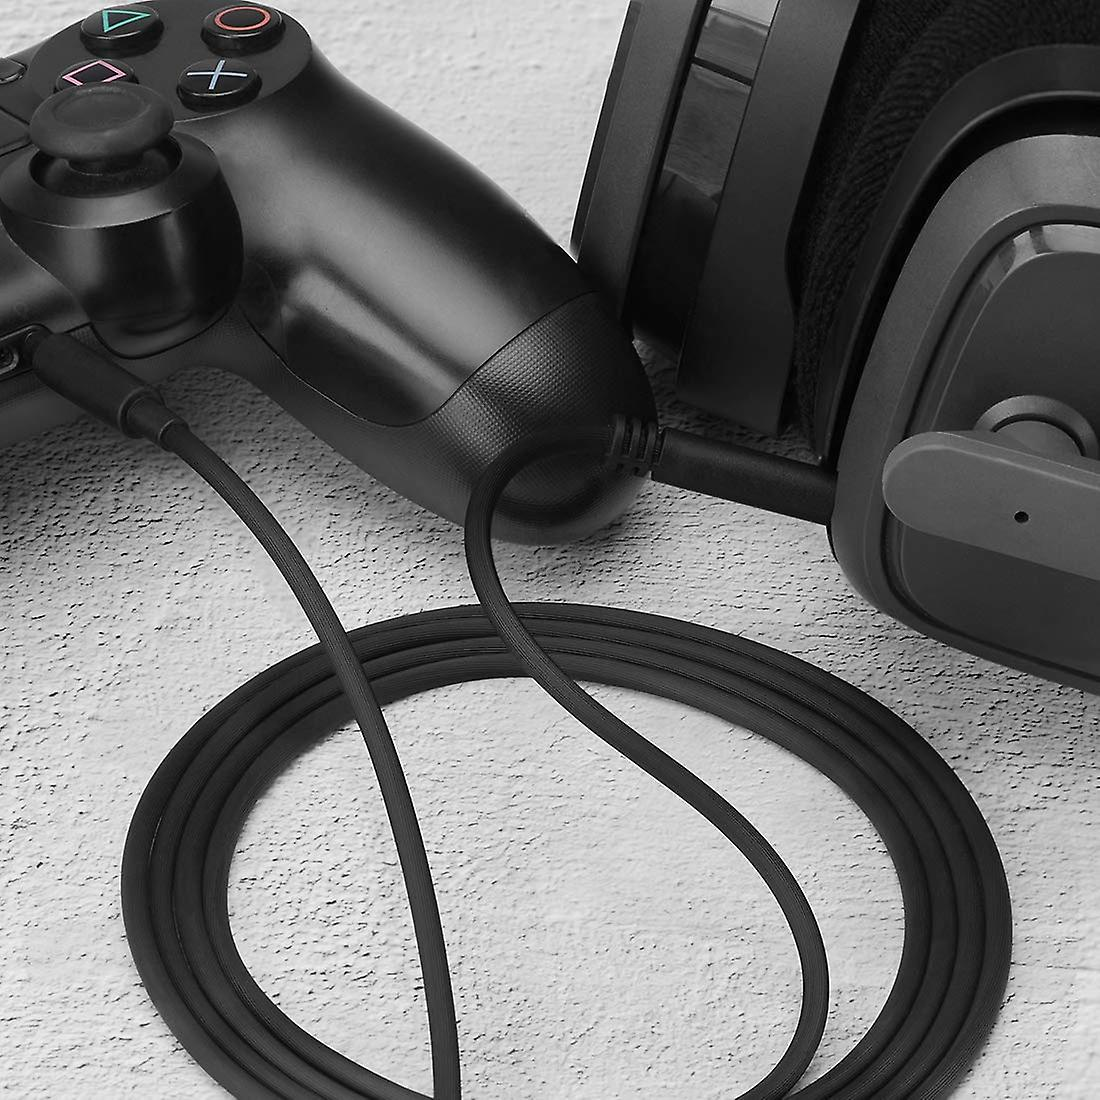 Replacement Astro Gaming Headset Daisy Chain Cable for MixAmp & A40 - Lead, Wire, Pro - 1.0m